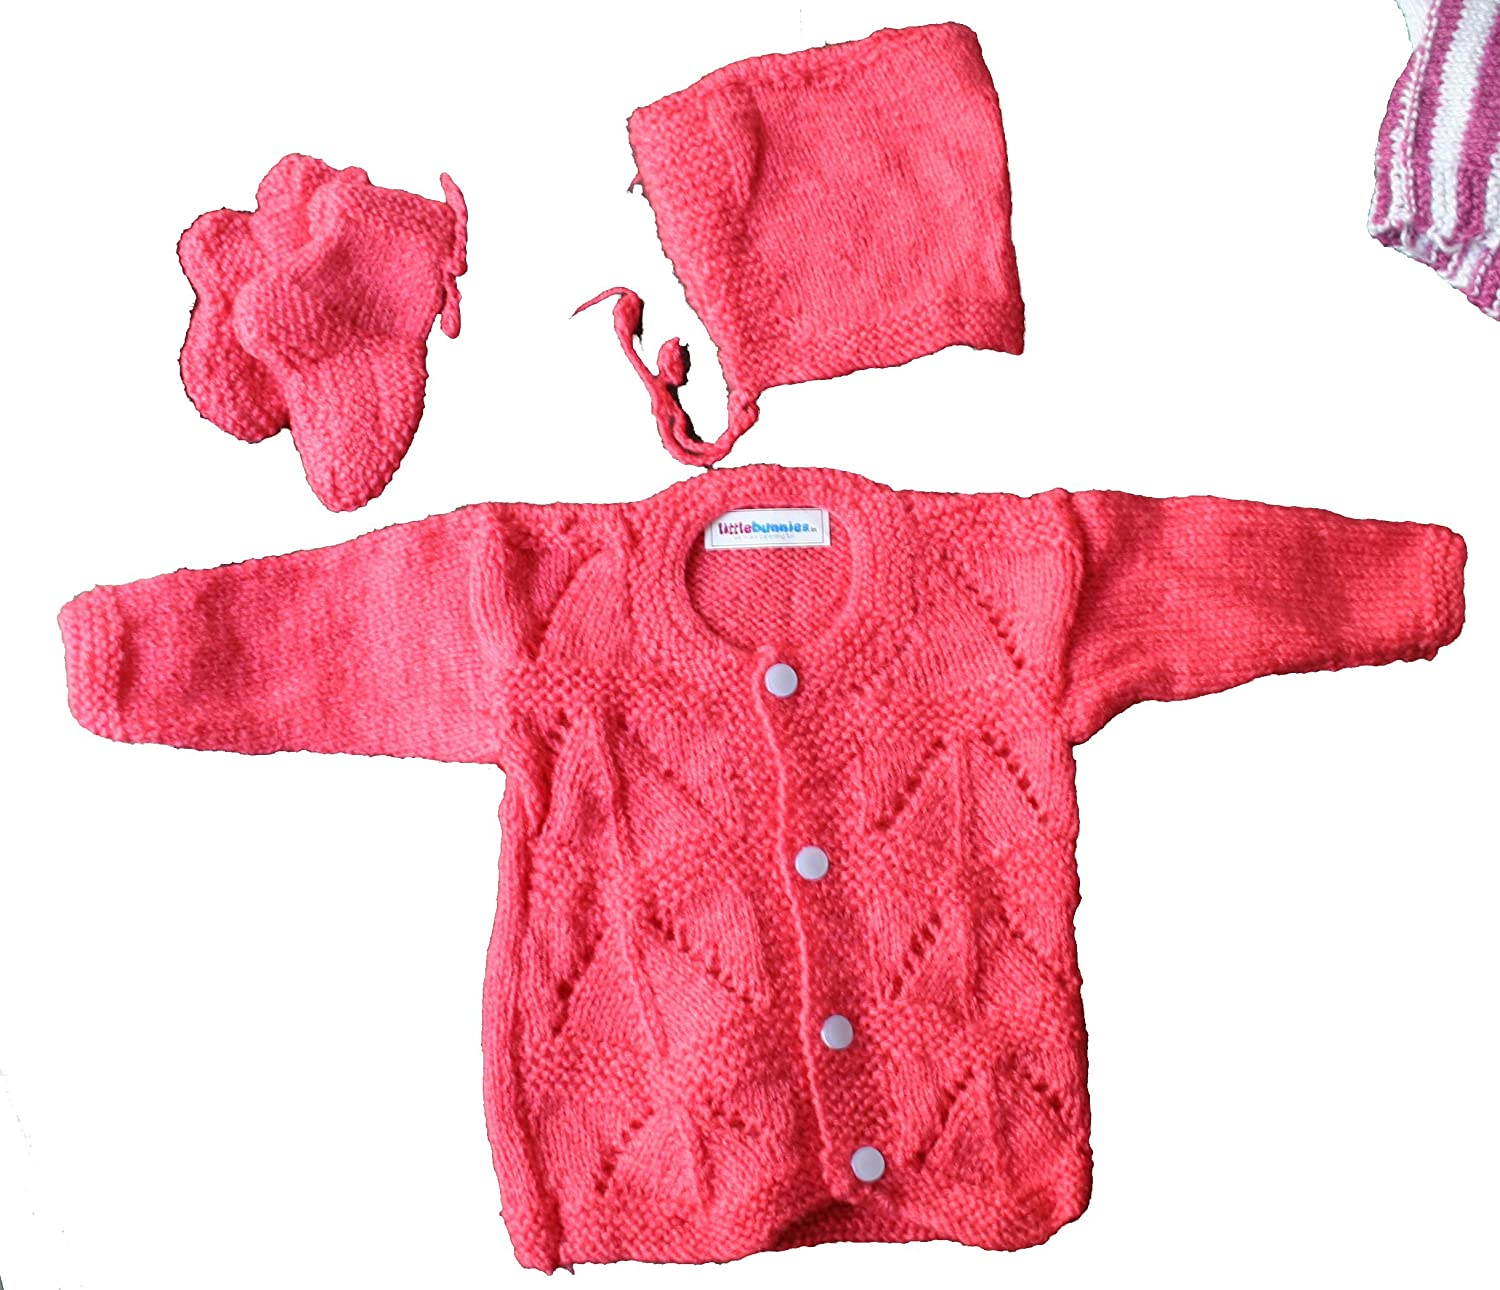 f8b60ba97 Little Bunnies Newborn Baby s Handknit Woollen Winter Clothing Set ...